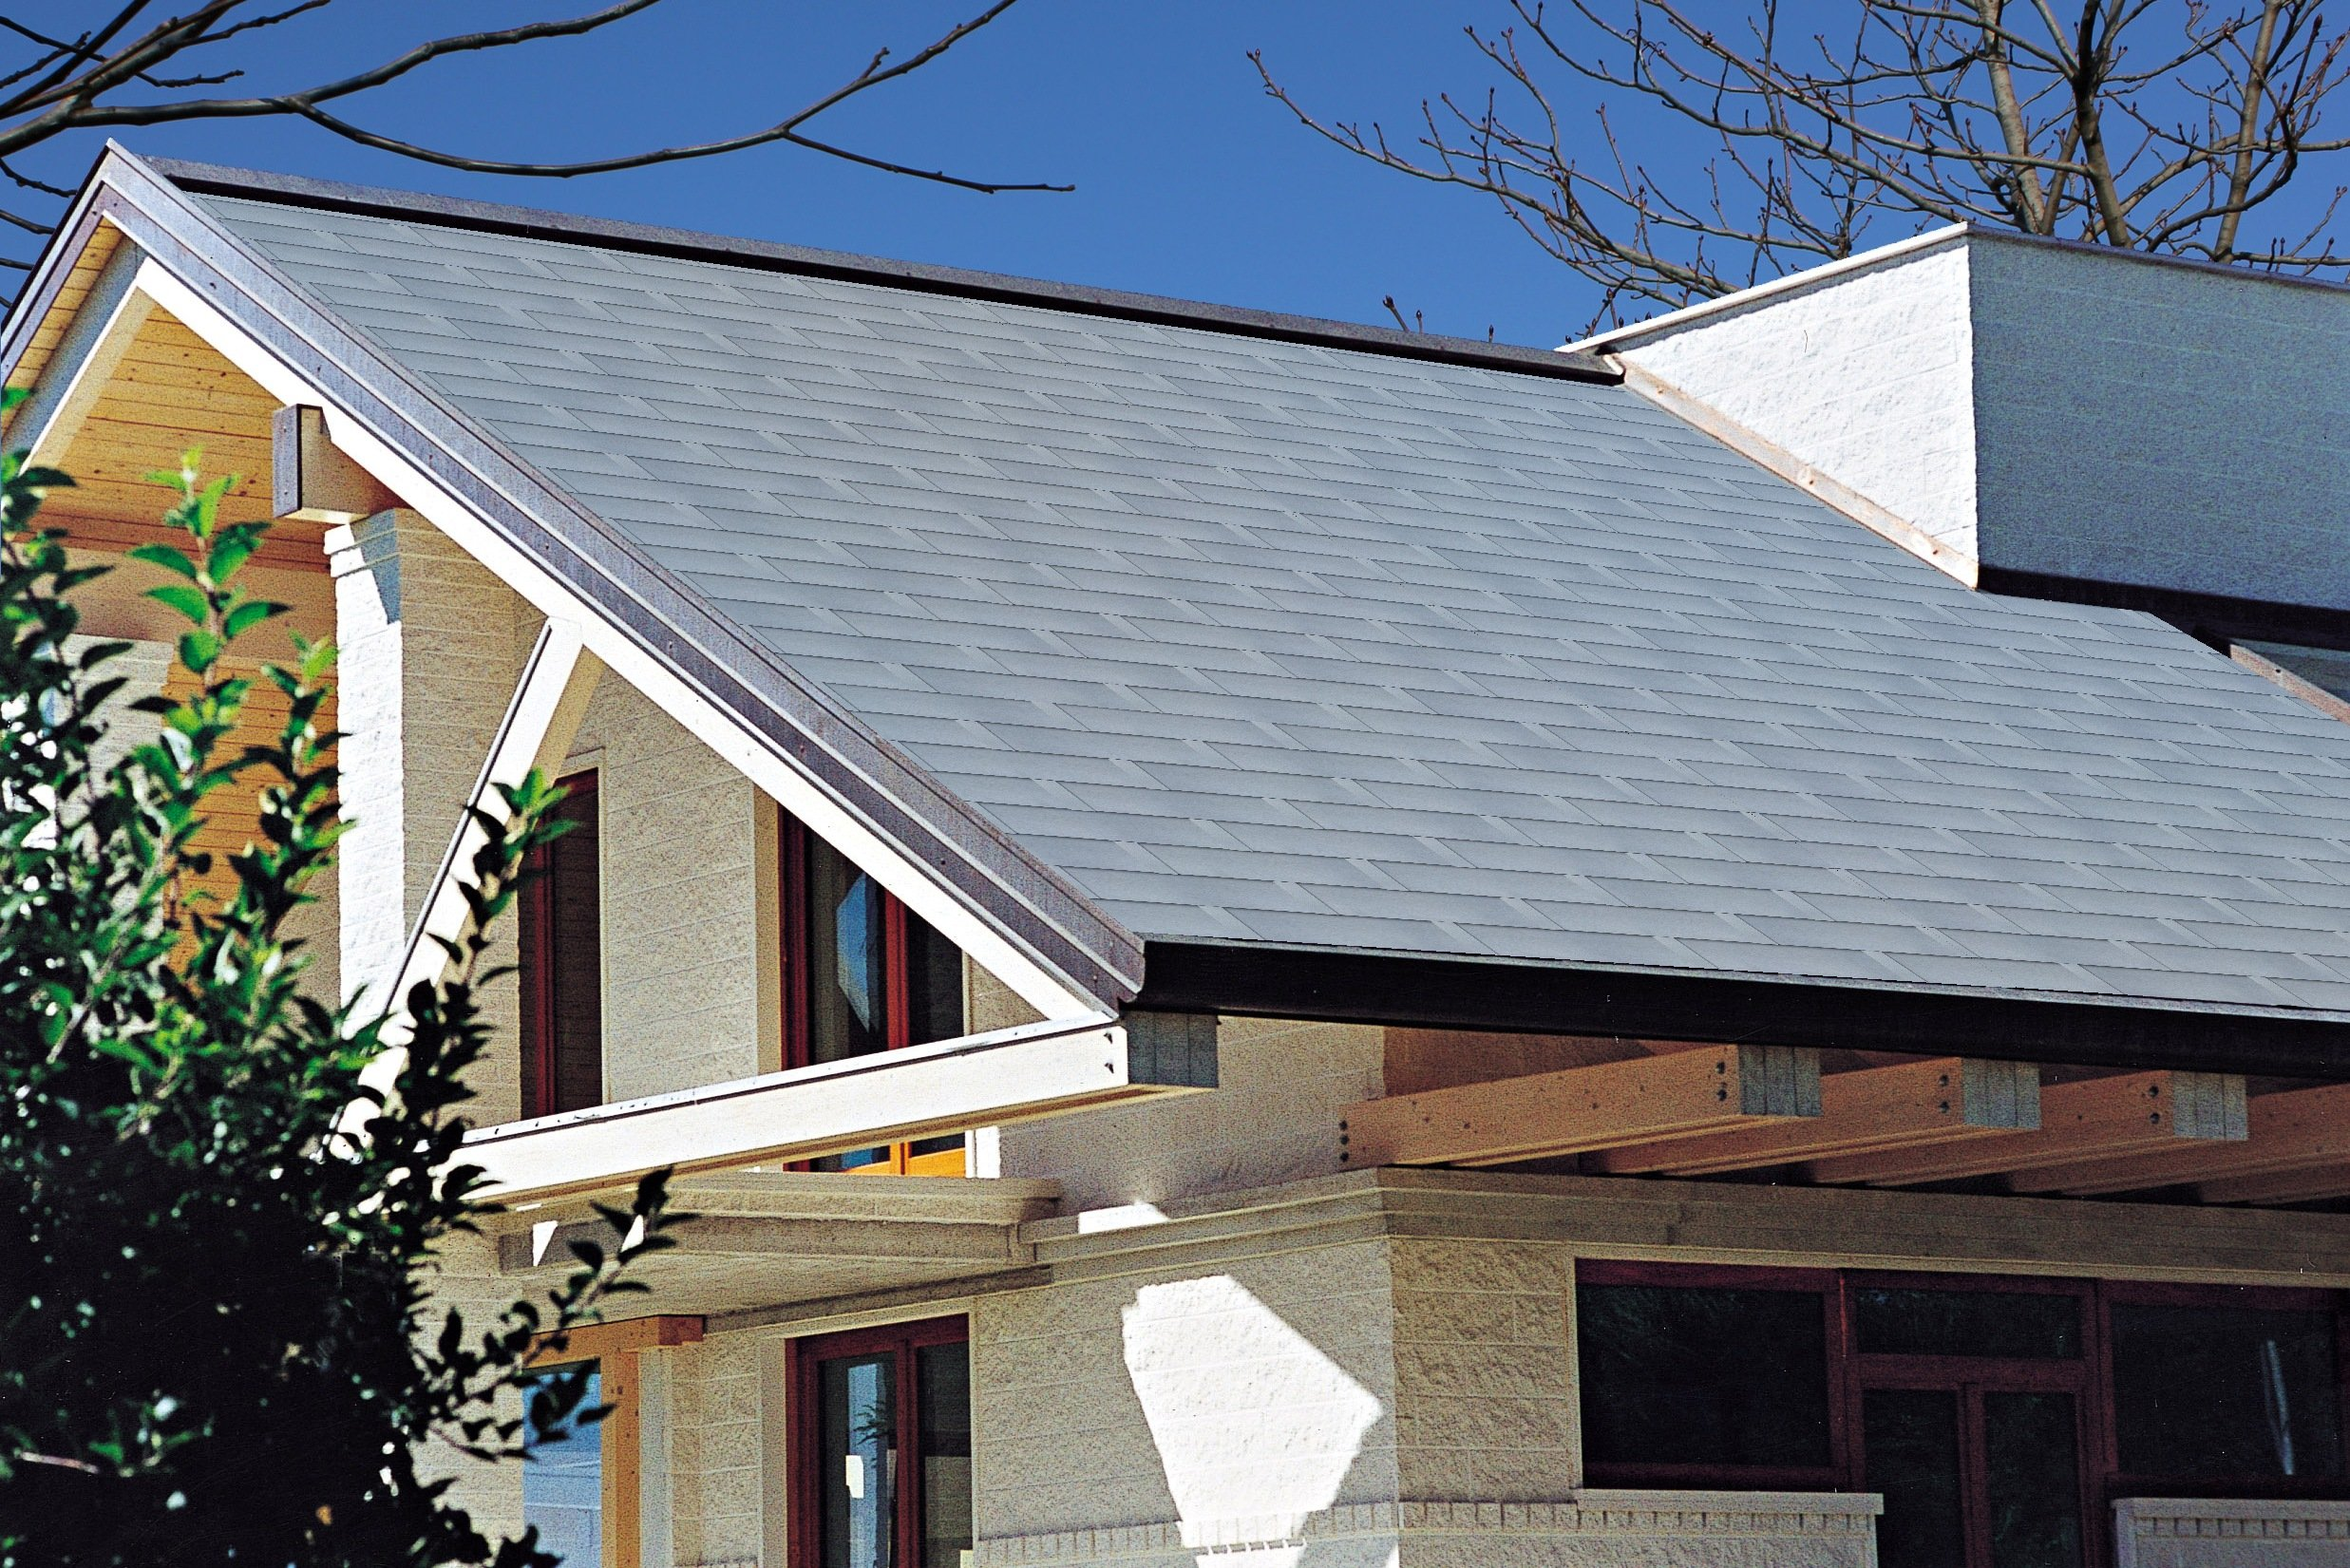 Aluminium Roof Shingle Prestige Ultimetal By Tegola Canadese